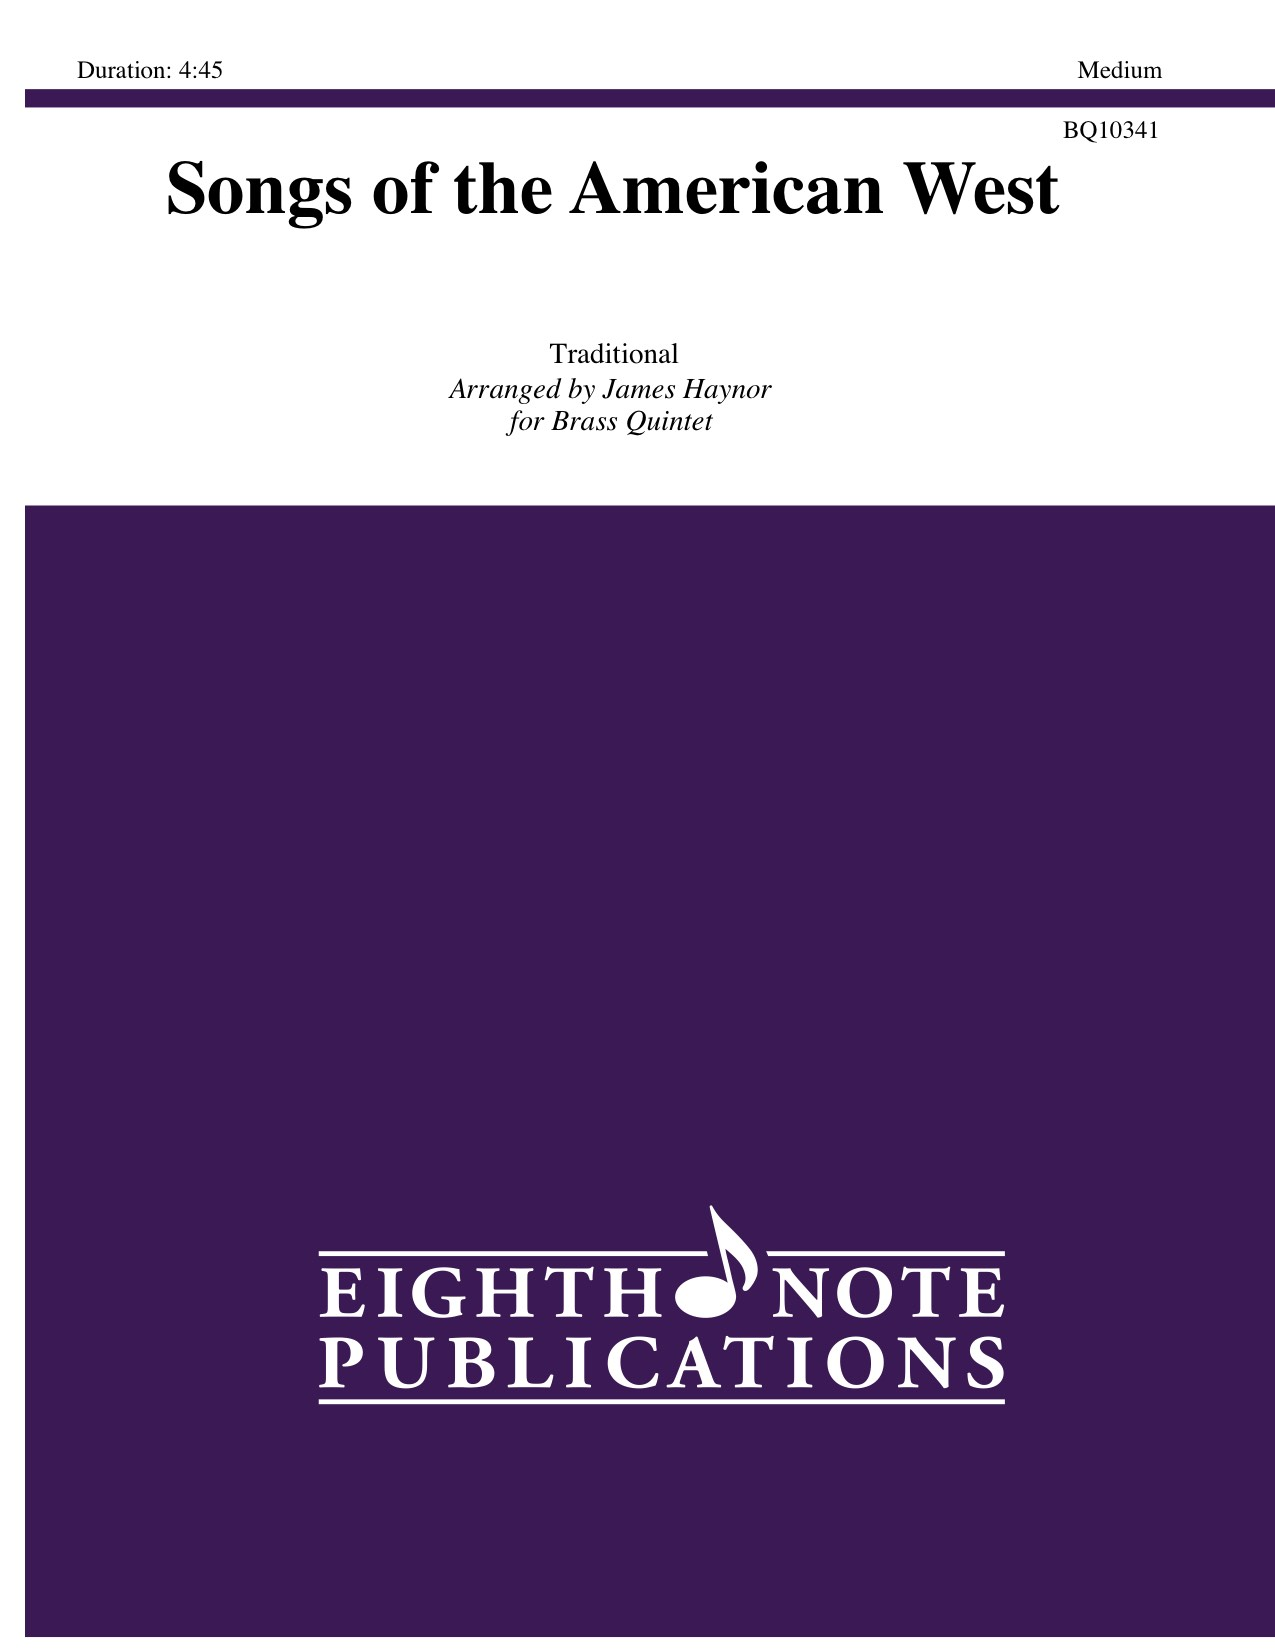 Songs of the American West -  Traditional